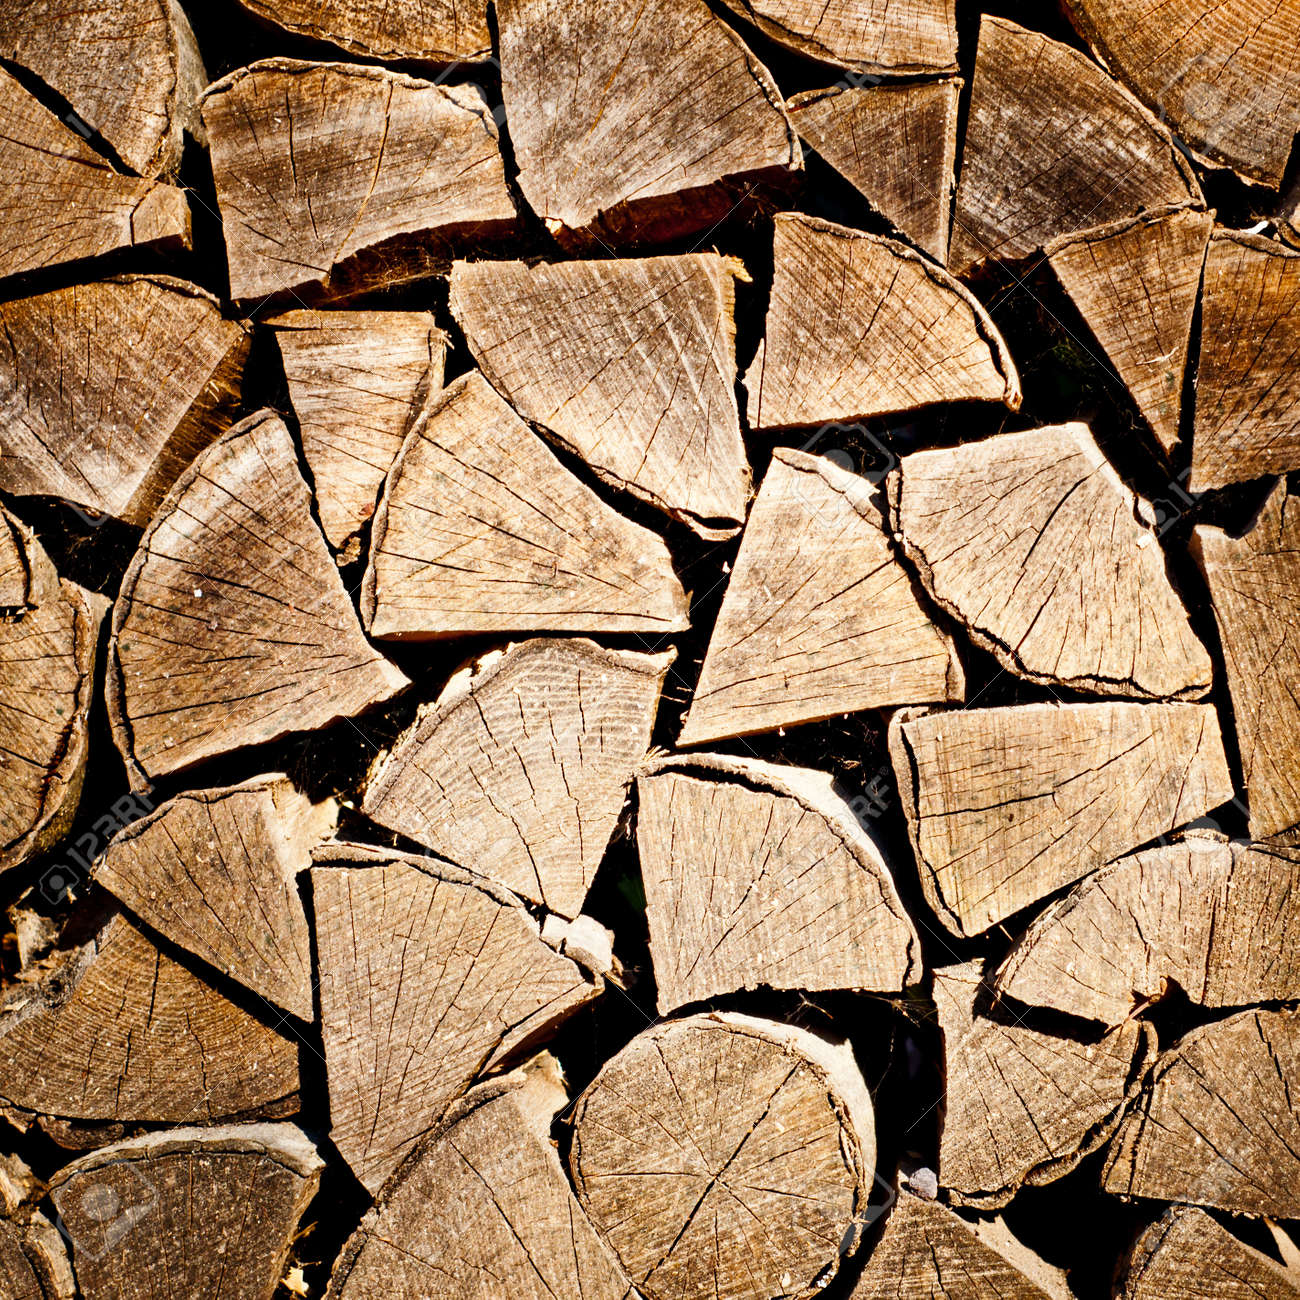 fire wood background texture. closeup of chopped fire wood stack Stock Photo - 17924919